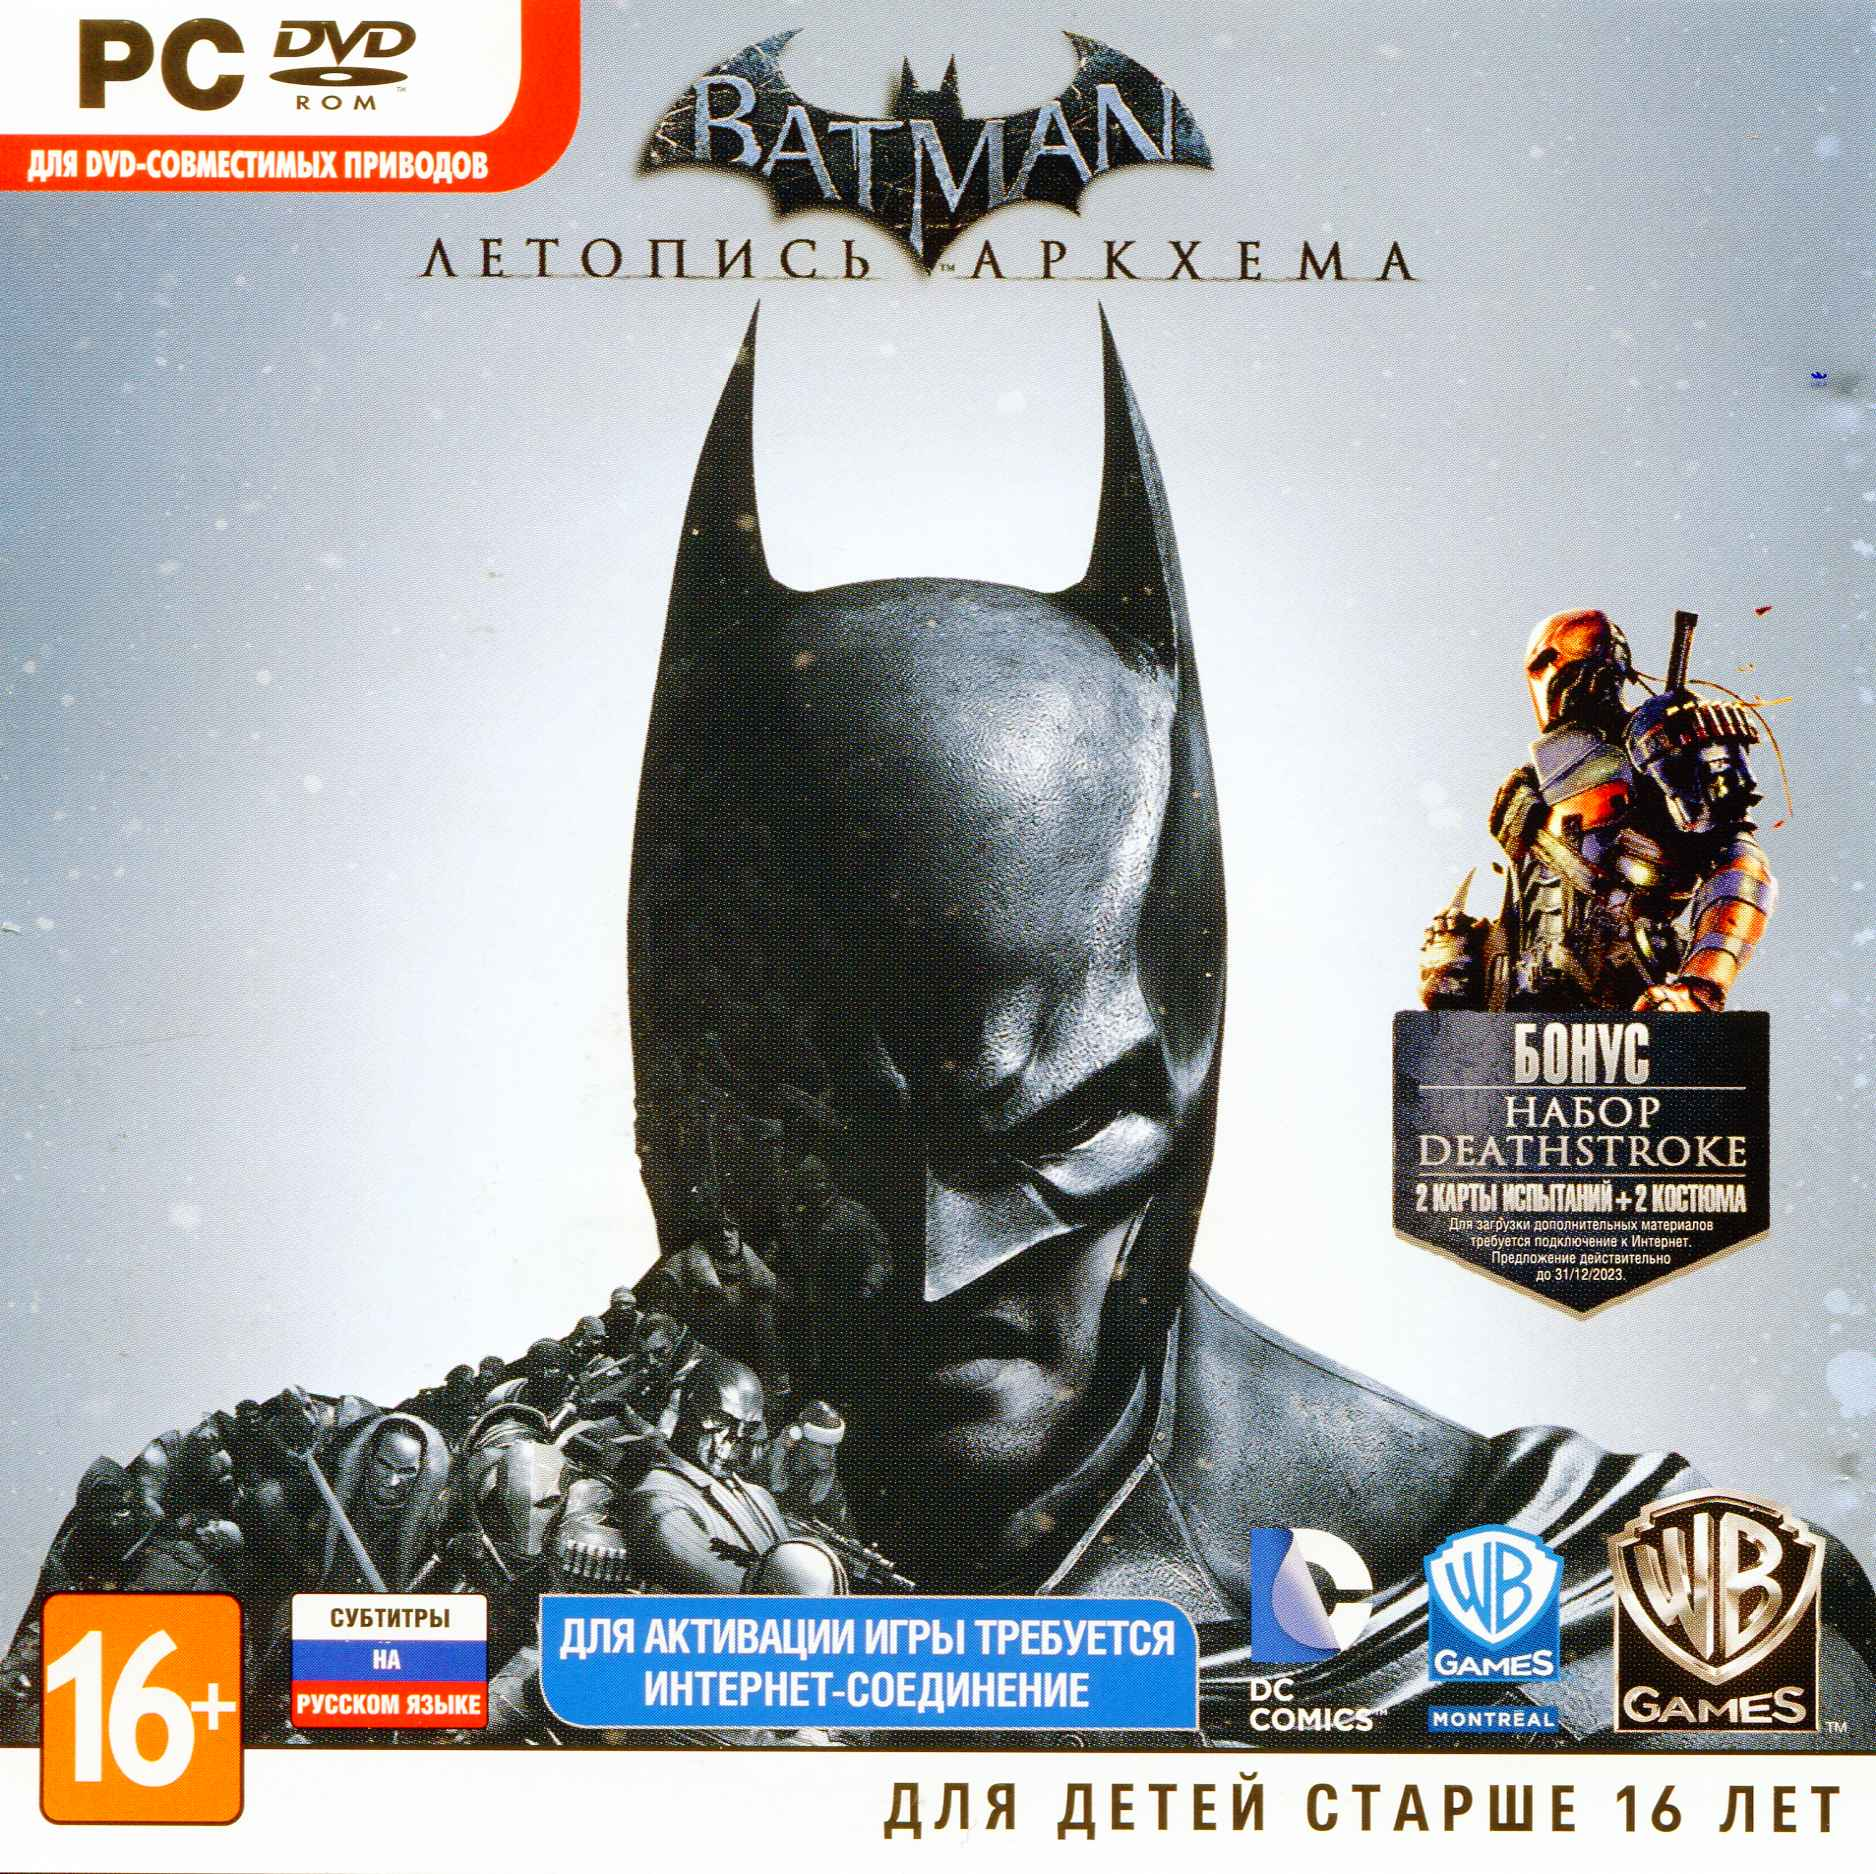 Batman: Arkham Origins (Activation Key on Steam)